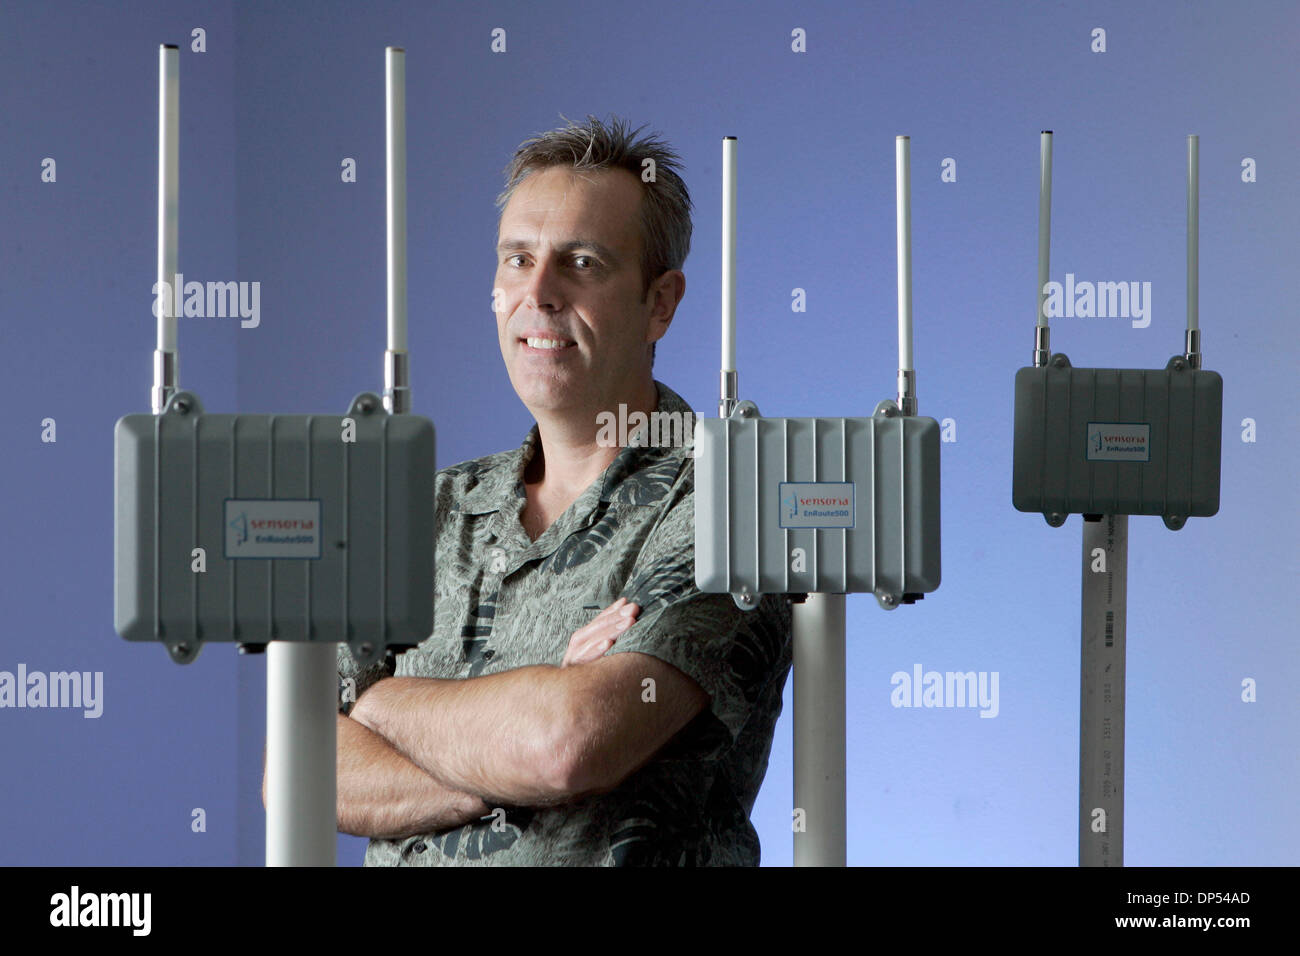 Aug 31, 2006; San Diego, CA, USA; DAVE GELVIN is pictured with his 'EnRoute500' mesh router and WiFi access point. Gelvin is the President and CEO of Sensoria Corp. Sensoria Corp. makes wireless networks that are used not only by the military but also by universities and  municipalities that want to offer wireless, high-speed Internet access outdoors.  Mandatory Credit: Photo by Sc - Stock Image